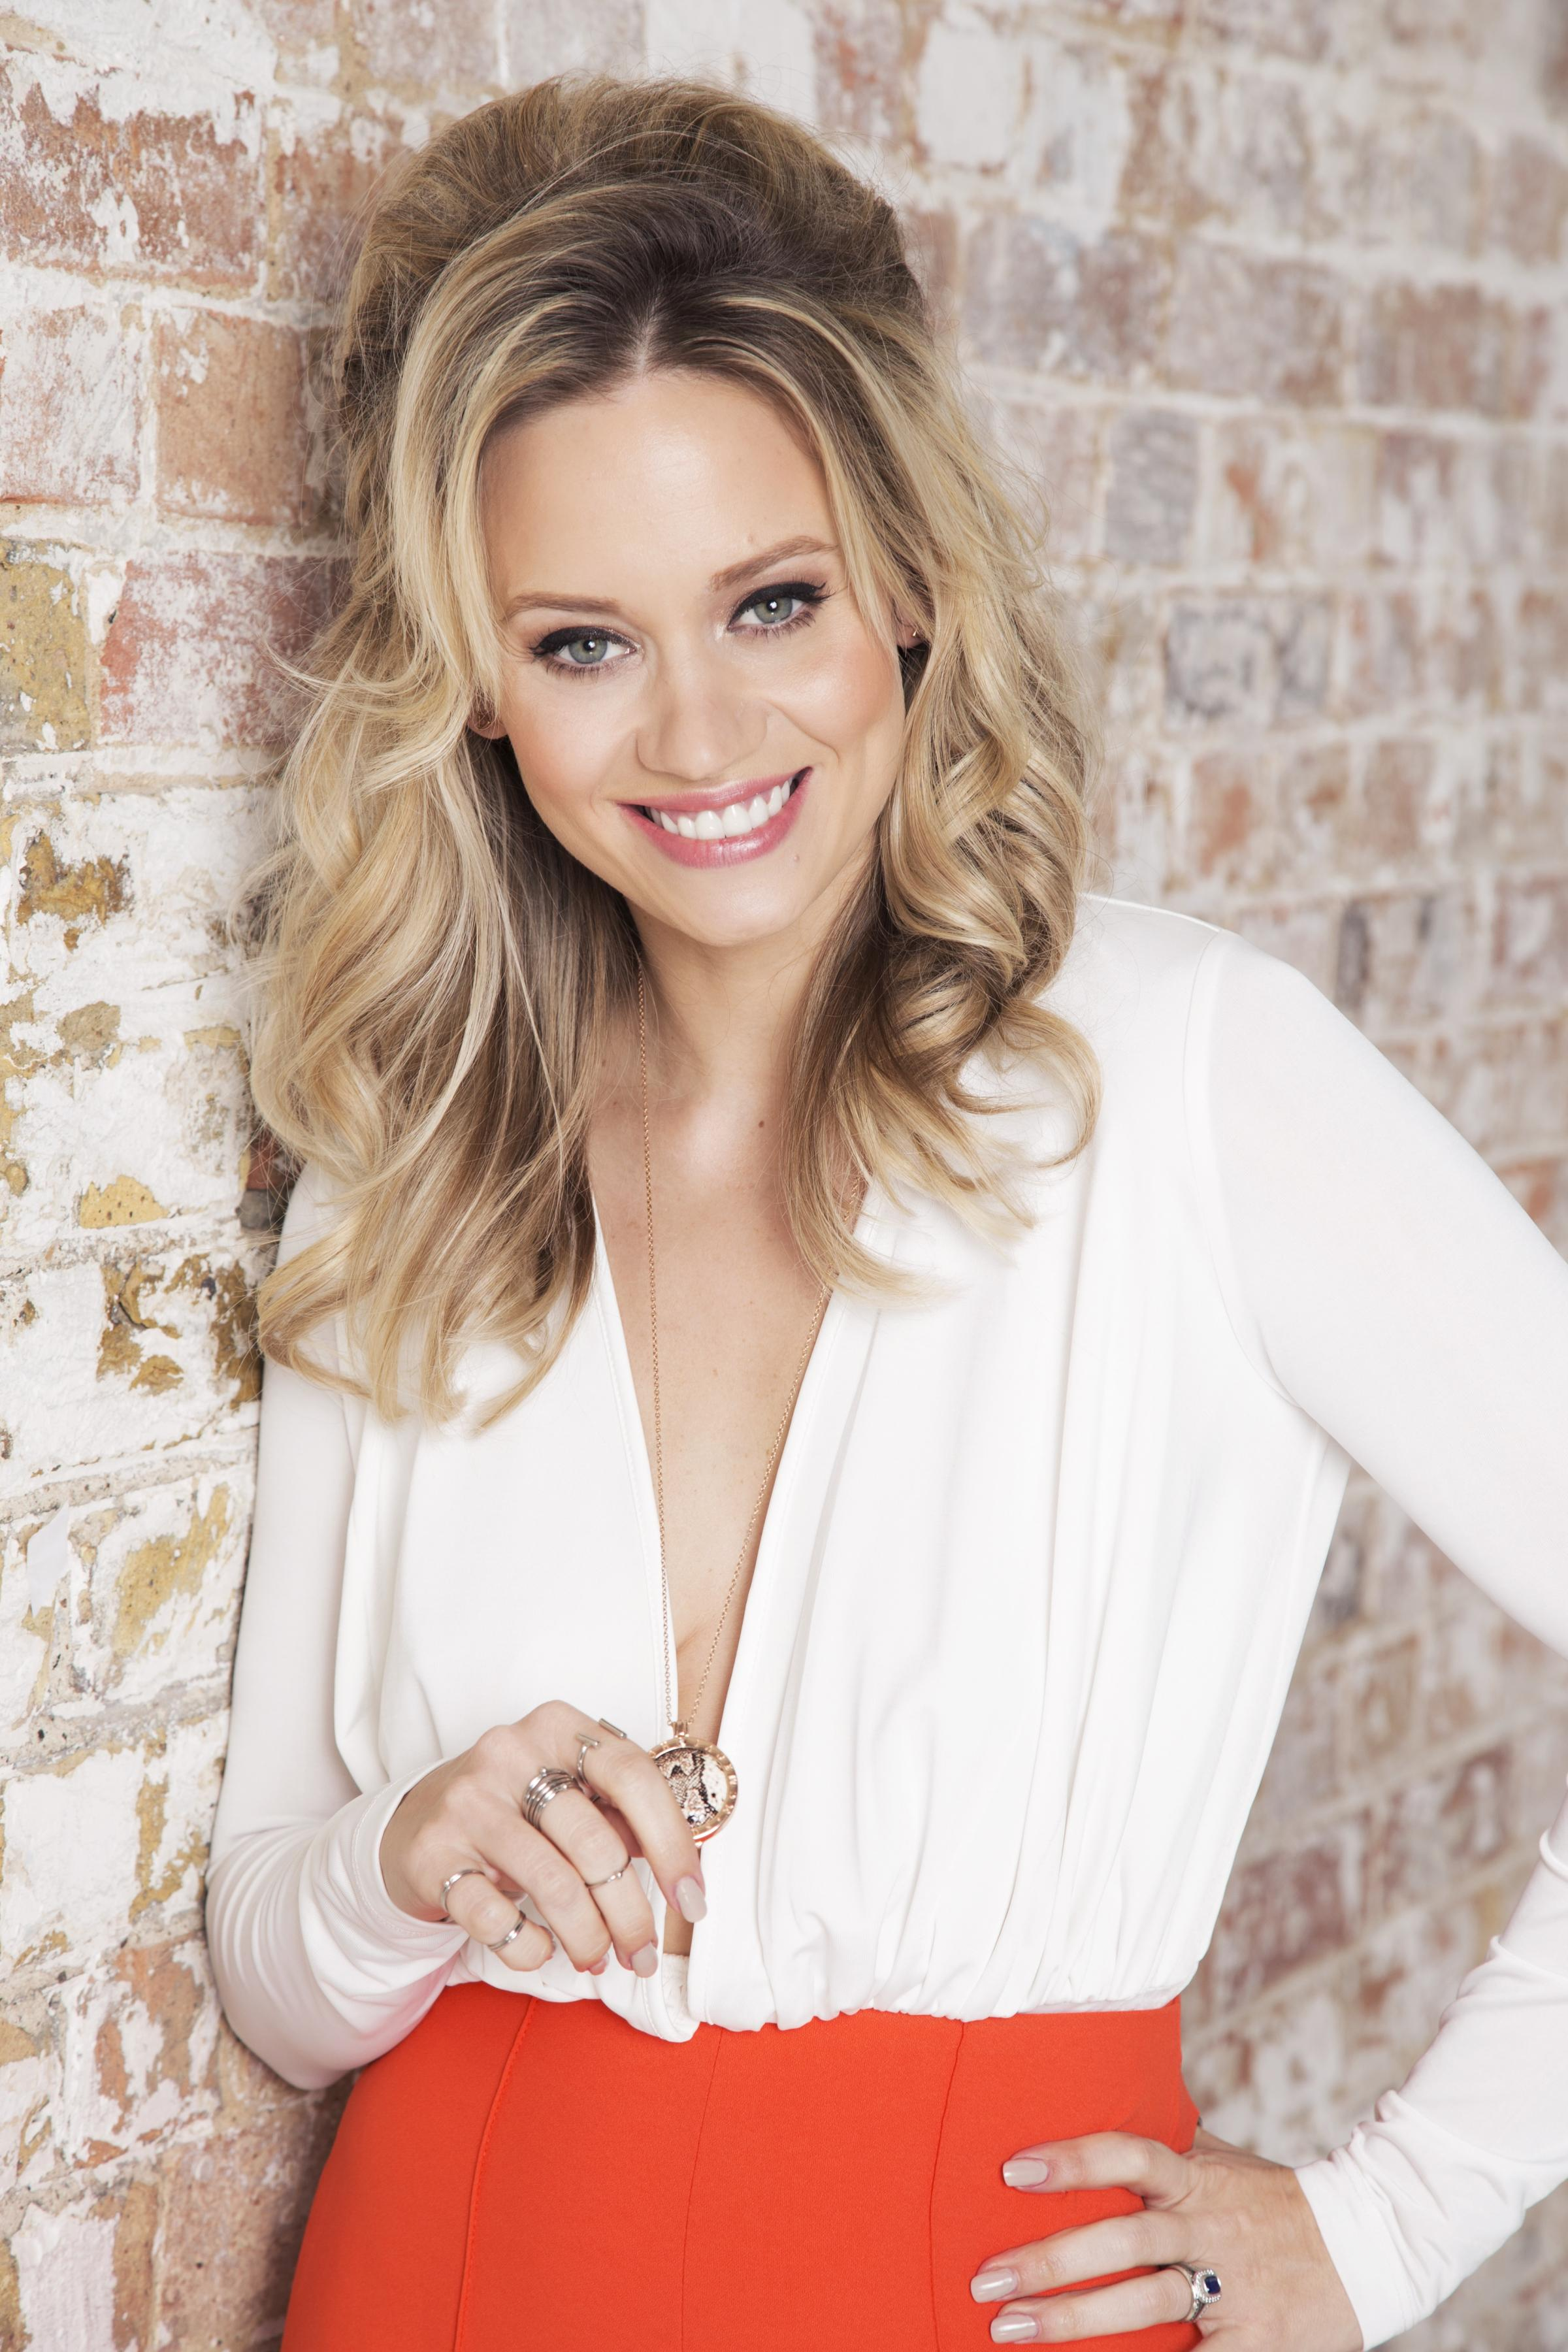 Shine Academy of Performing Arts welcomes dance idol Kimberly Wyatt at the Dolphin Shopping Centre